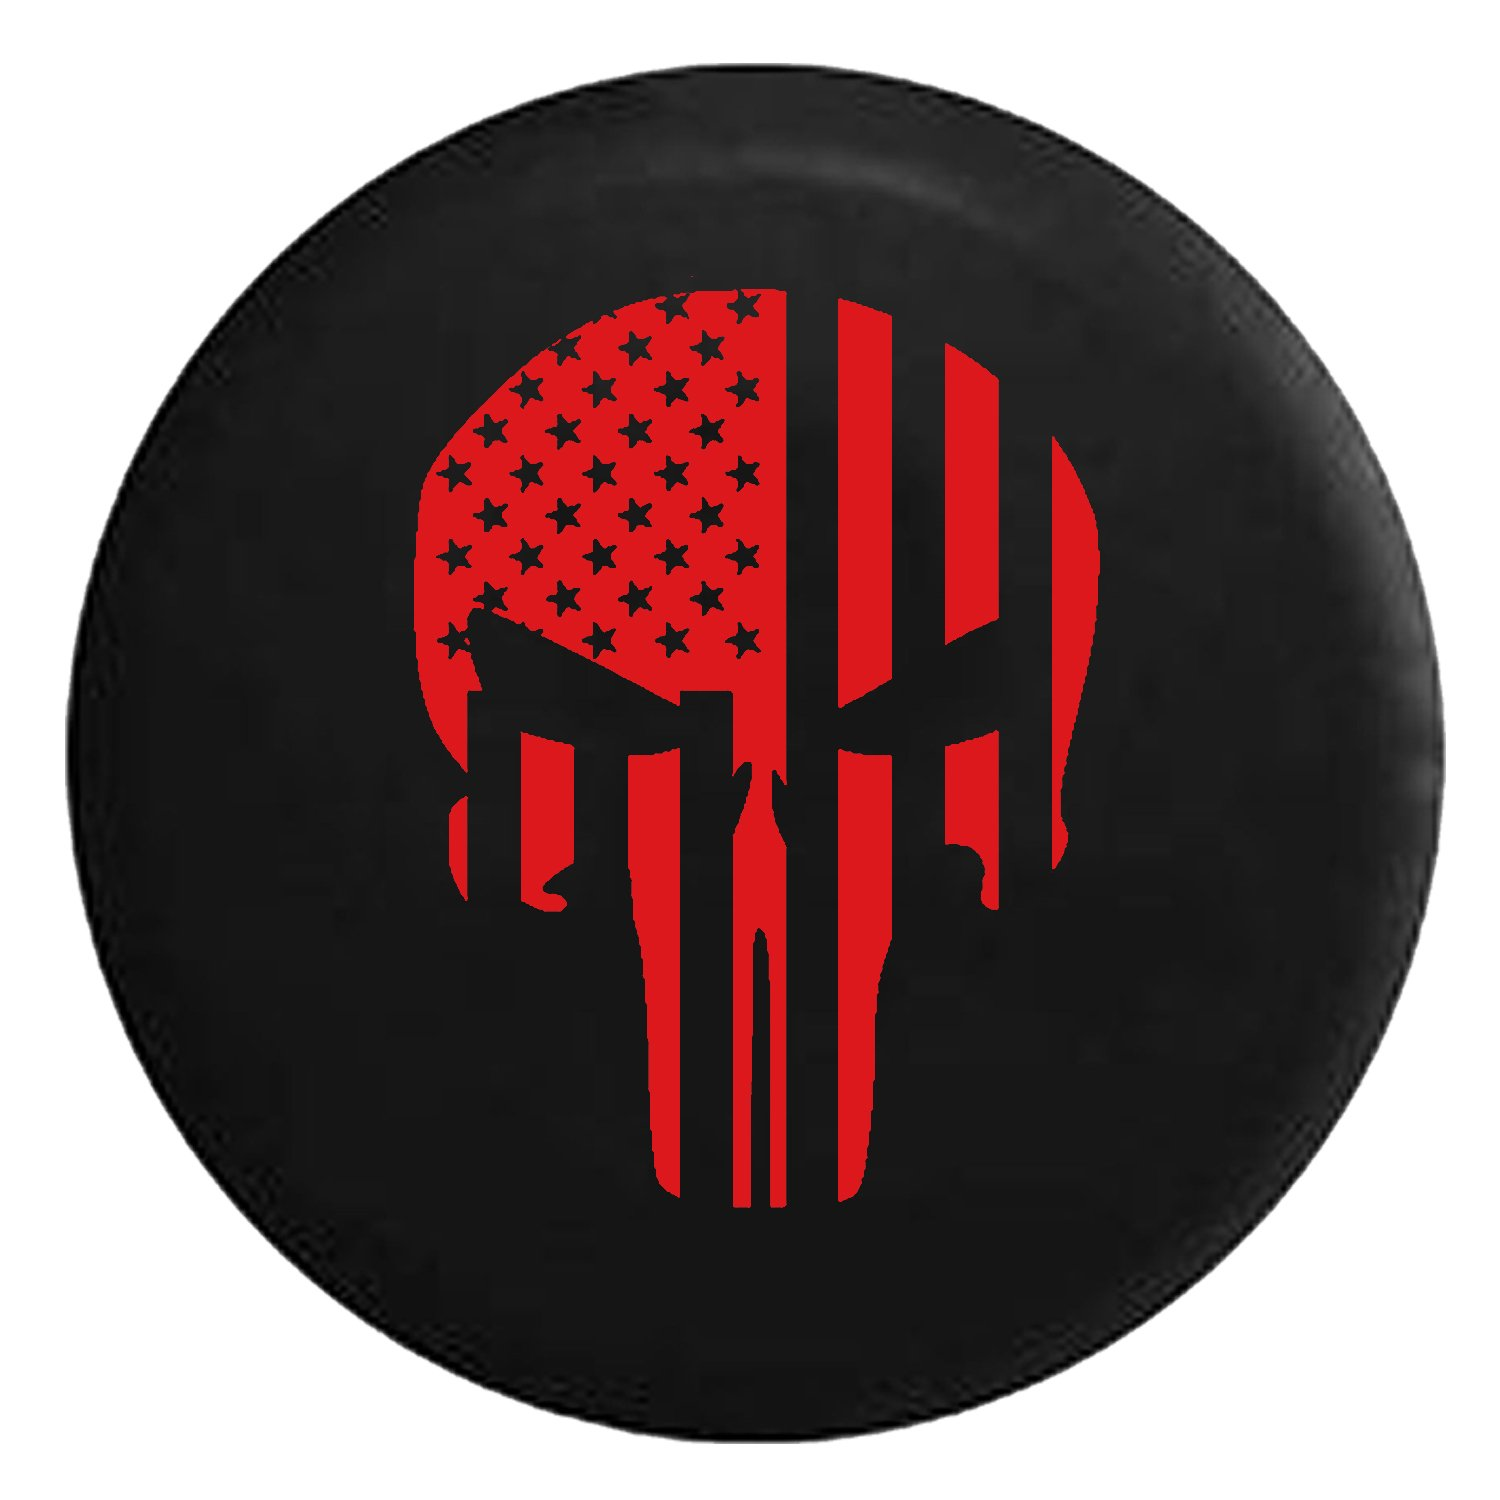 American Flag Tactical Stars & Stripes Punisher Skull Spare Jeep Wrangler Camper SUV Tire Cover Red Ink 29 in